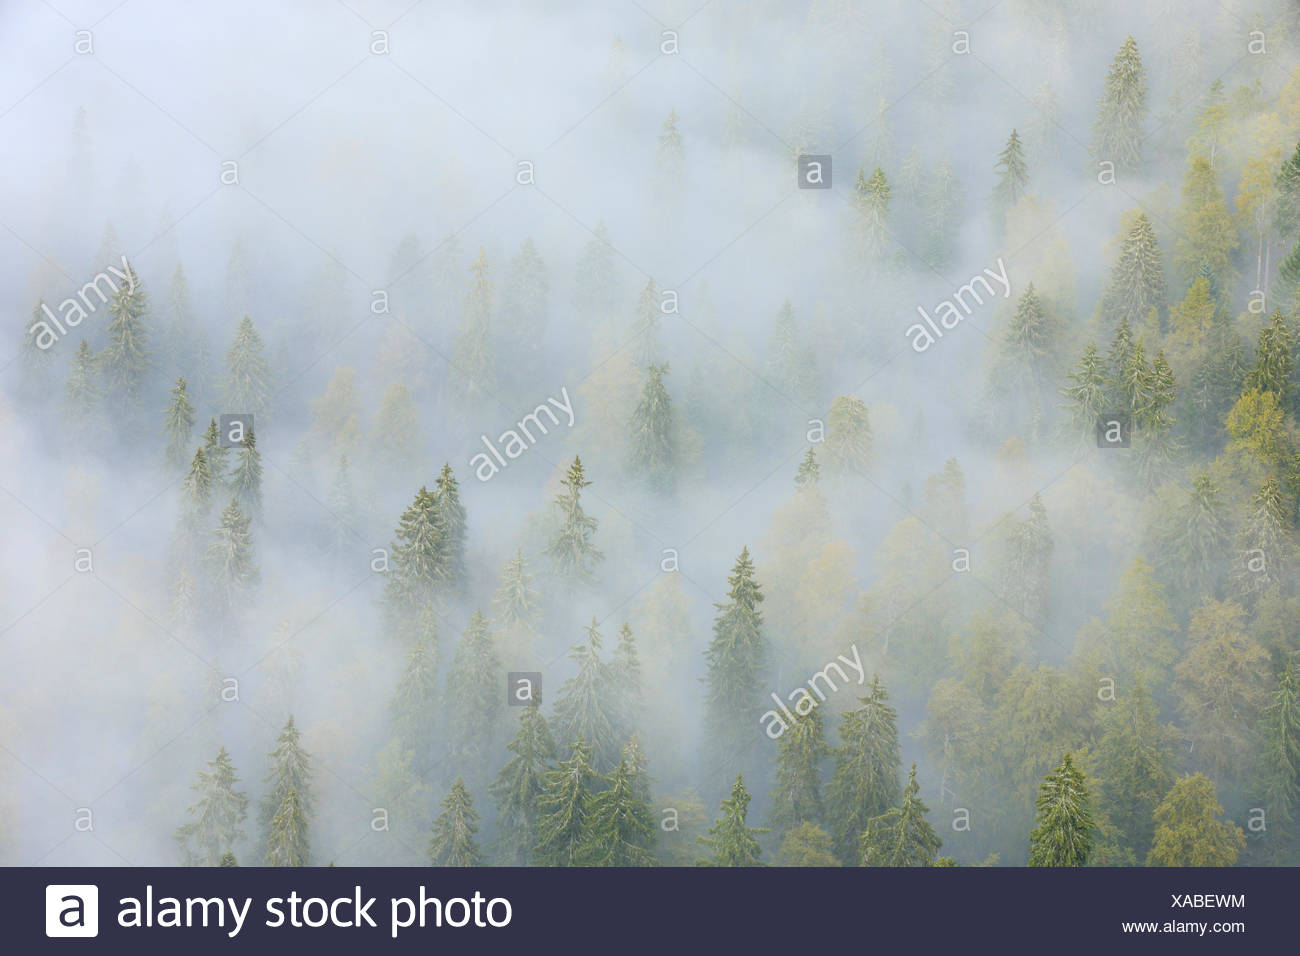 Tree, trees, spruce, spruces, spruce forest, Jura, nature, fog, fog patches, canton Neuenburg, Neuenburg Jura, plant, Switzerland - Stock Image